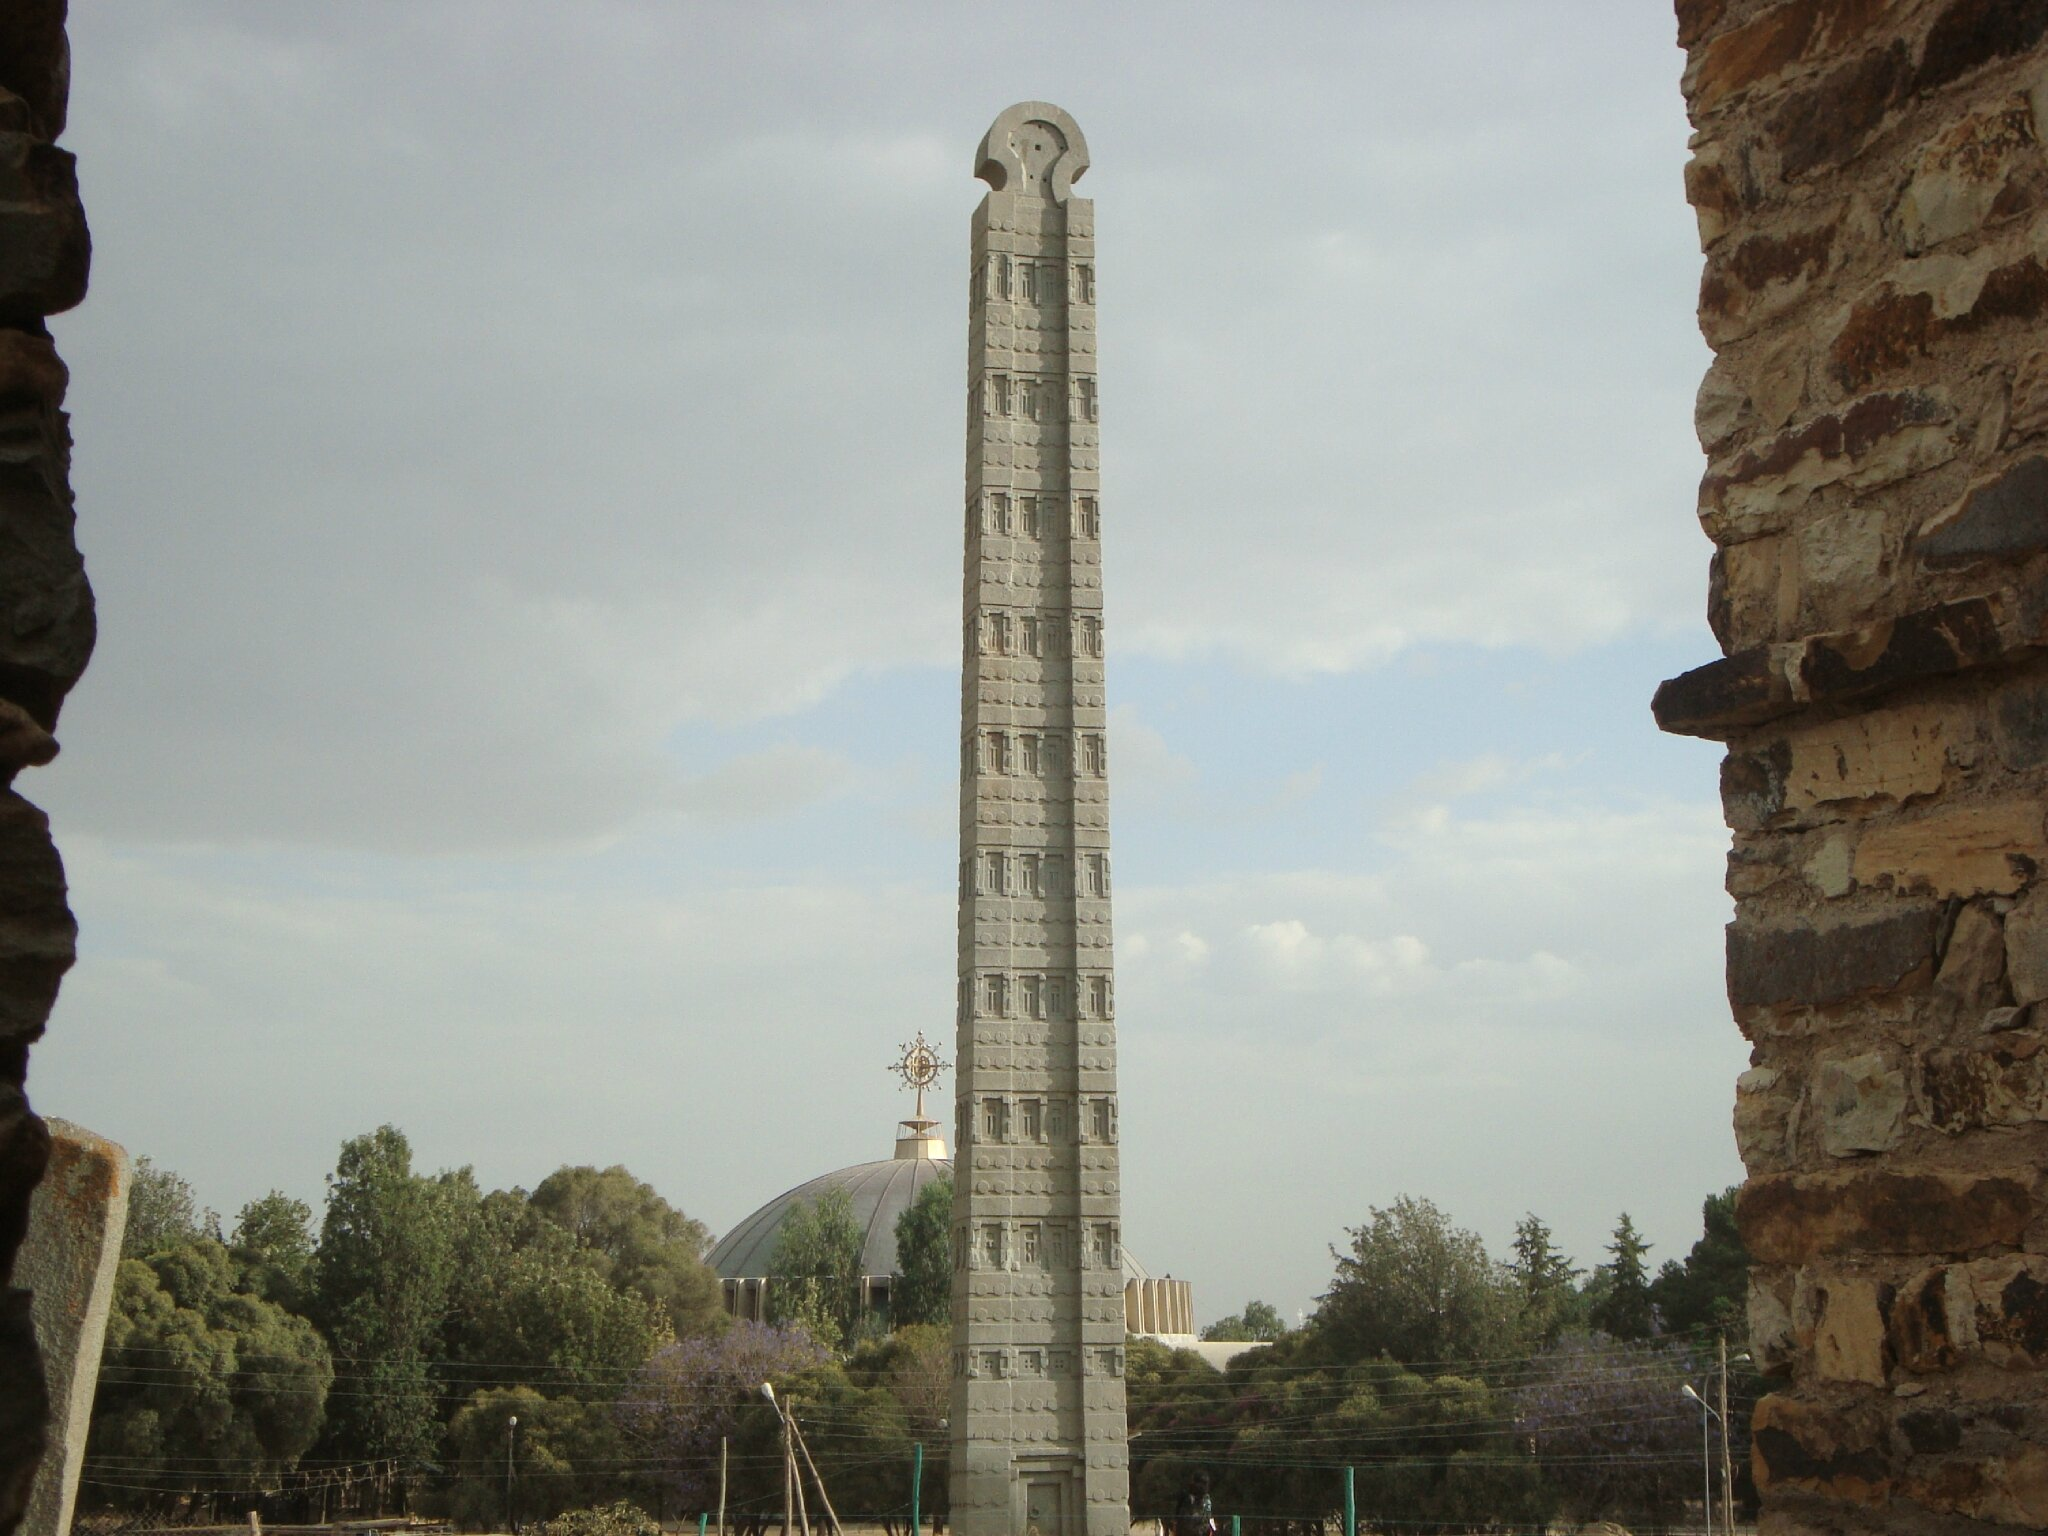 axum stel the biggest monolothic stele in the world